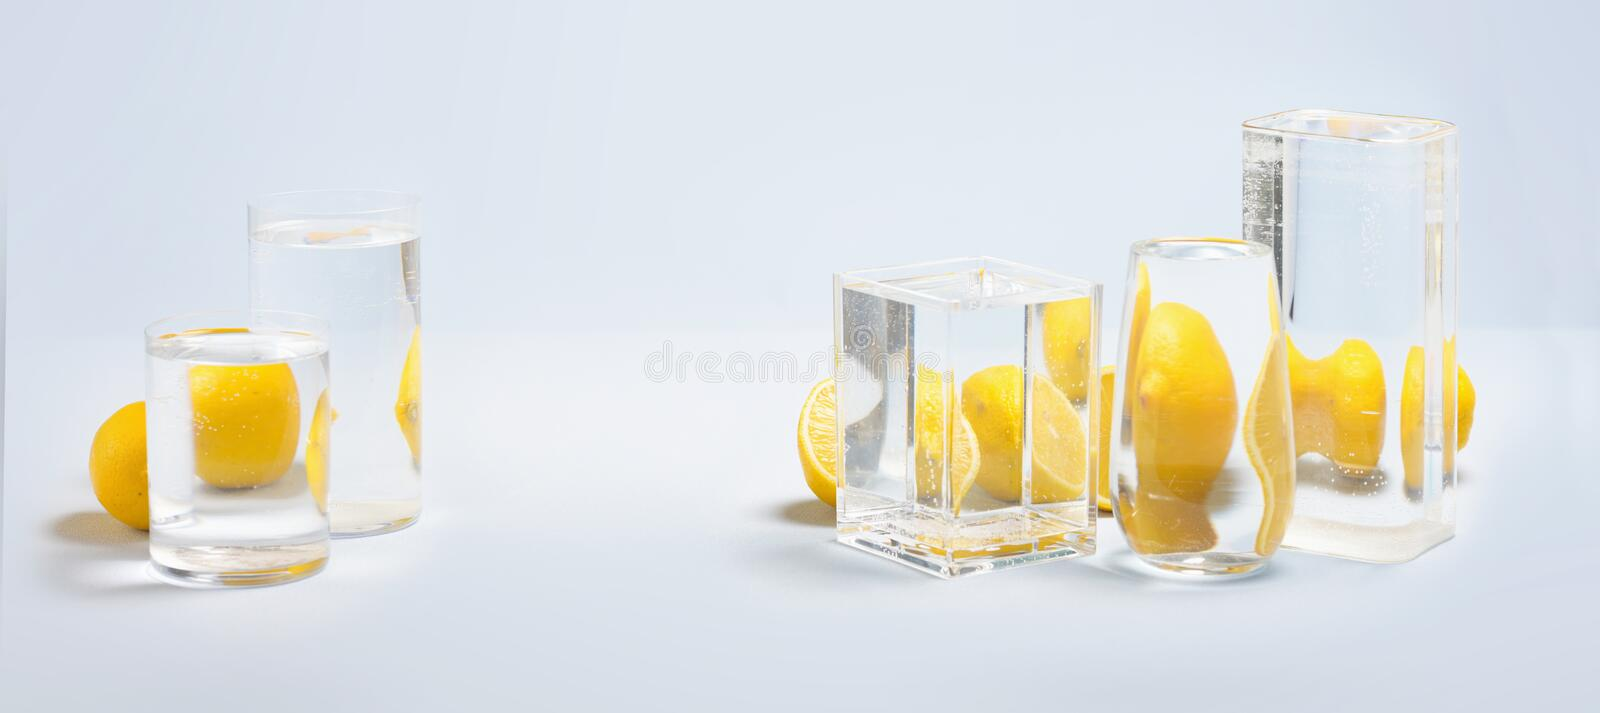 Foods distorted through liquid and glass on blue background. Perspective, fractured and skewed images of common foods as seen through vessels filled with water royalty free stock photos